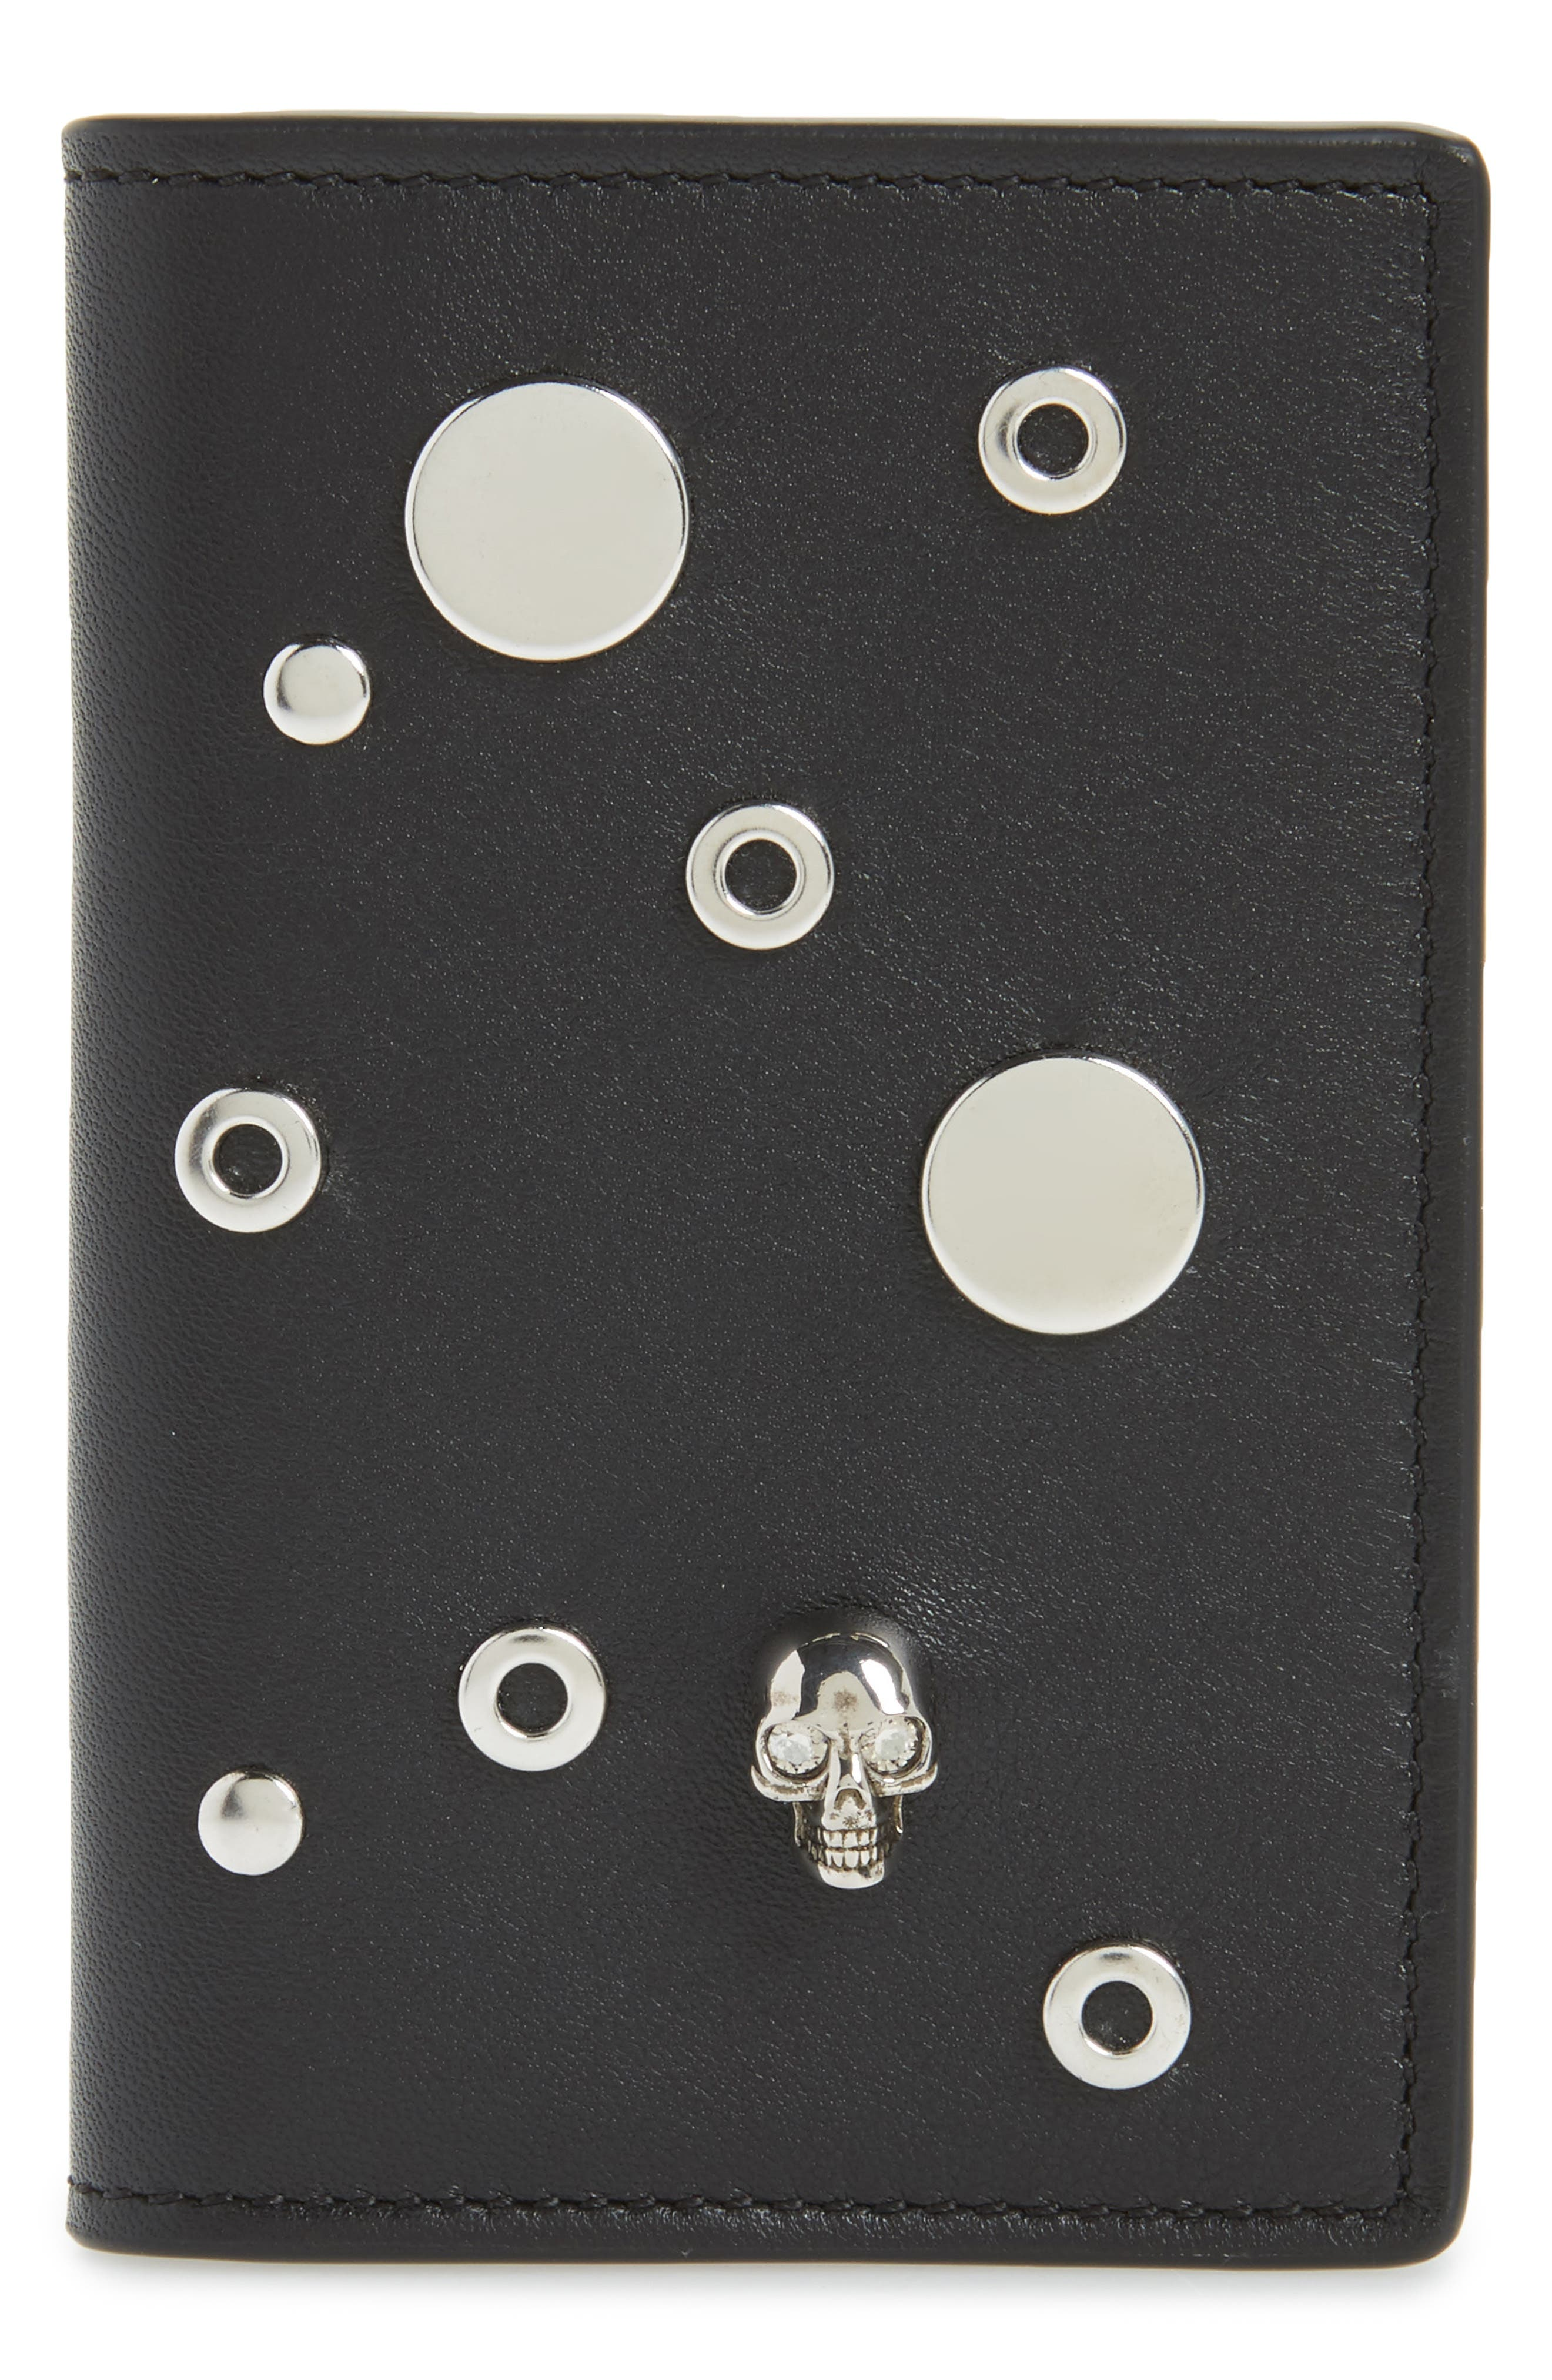 Alexander McQueen Grommet Card Holder